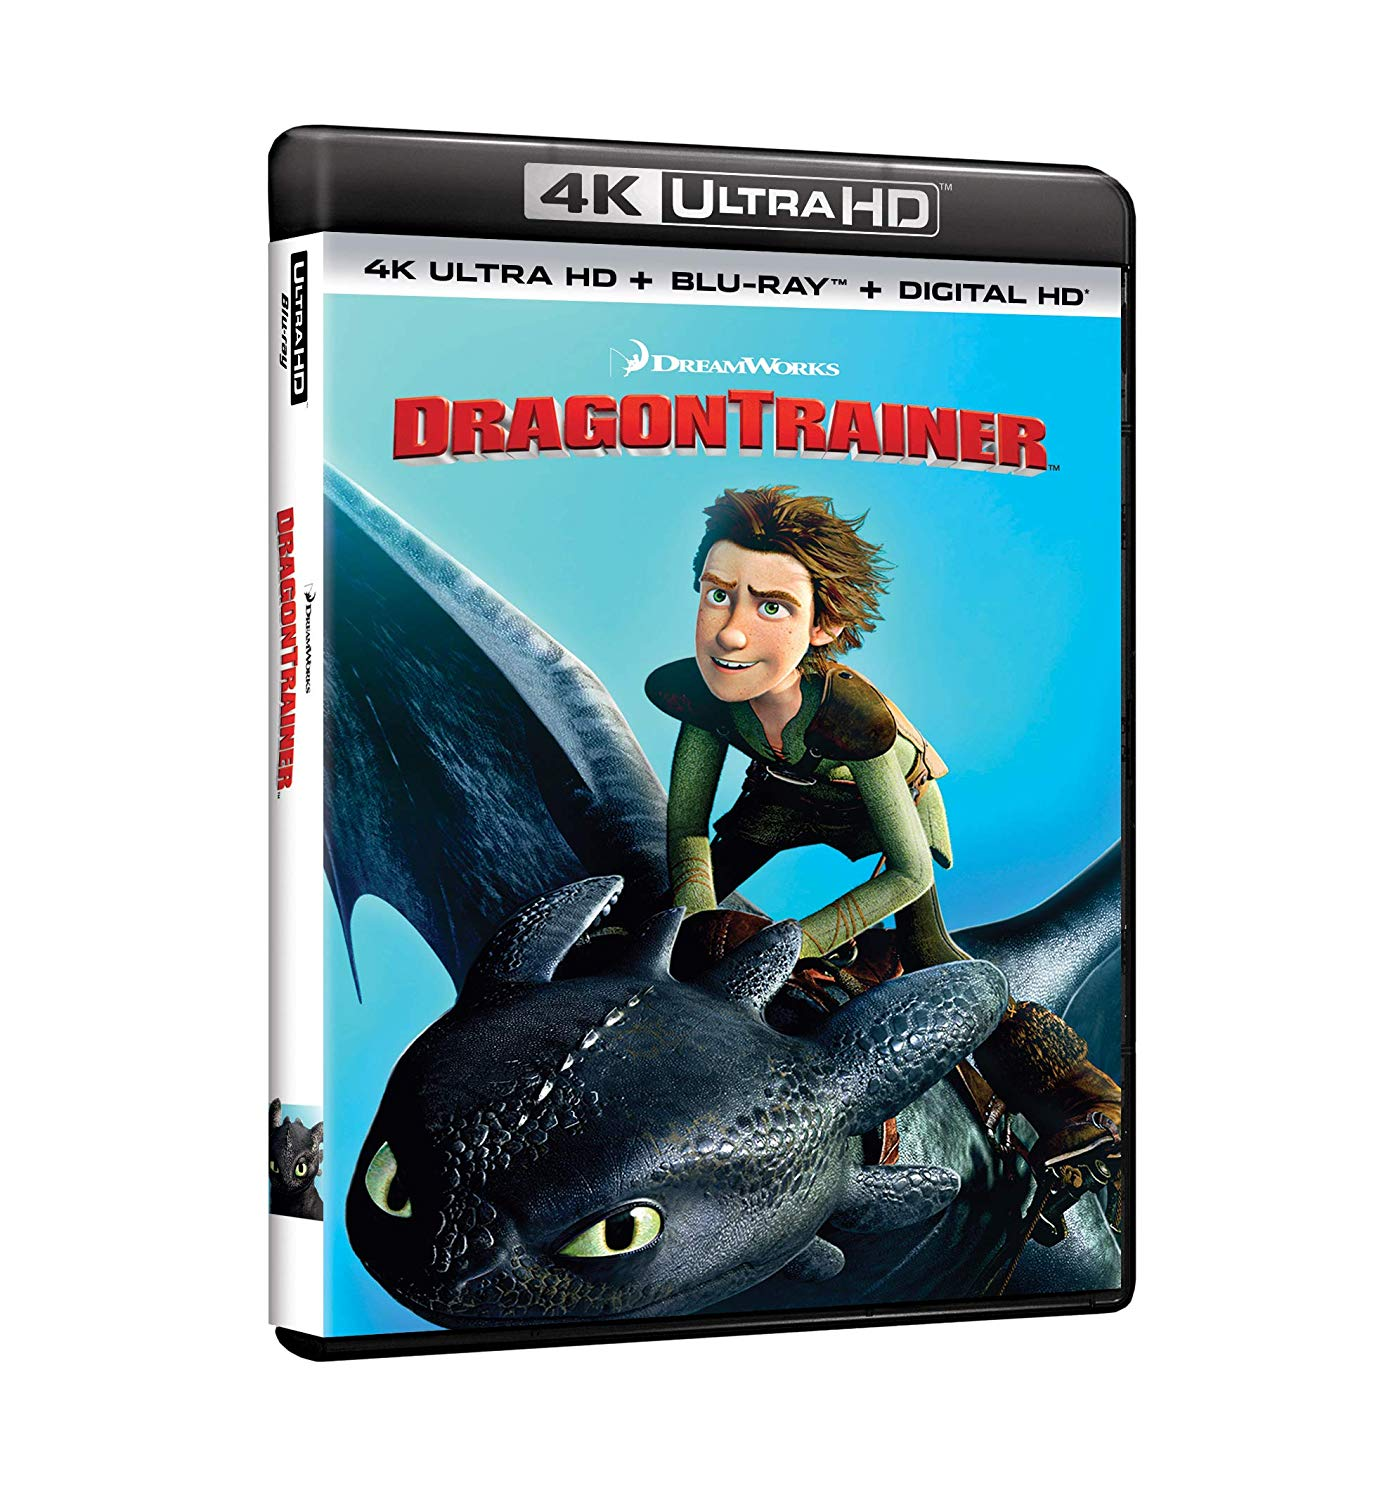 Dragon trainer (2010) (4K)